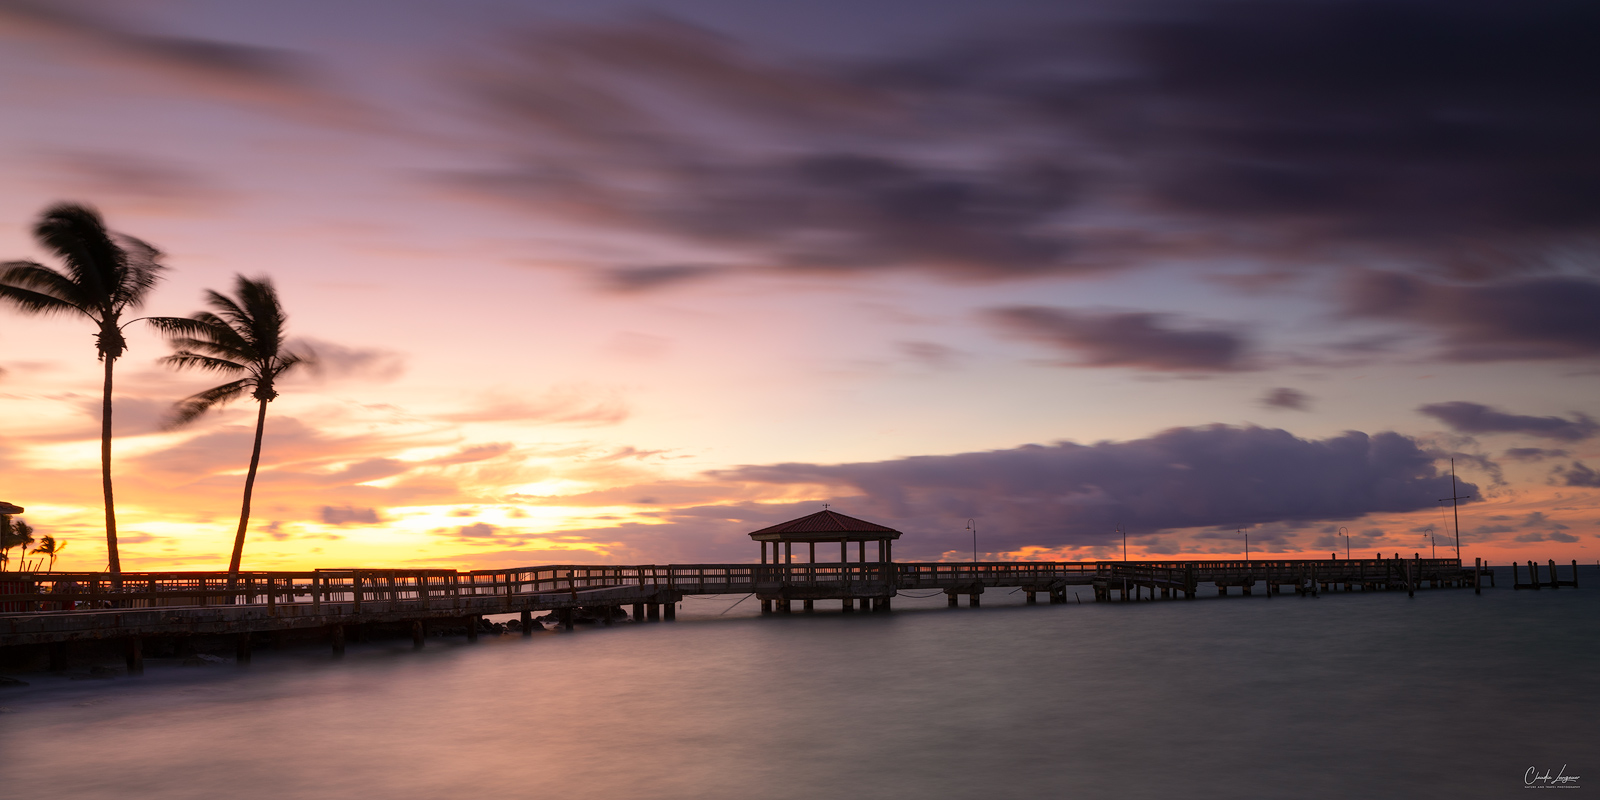 View of the pier at John & Mary Spottswood Waterfront Park in Key West.